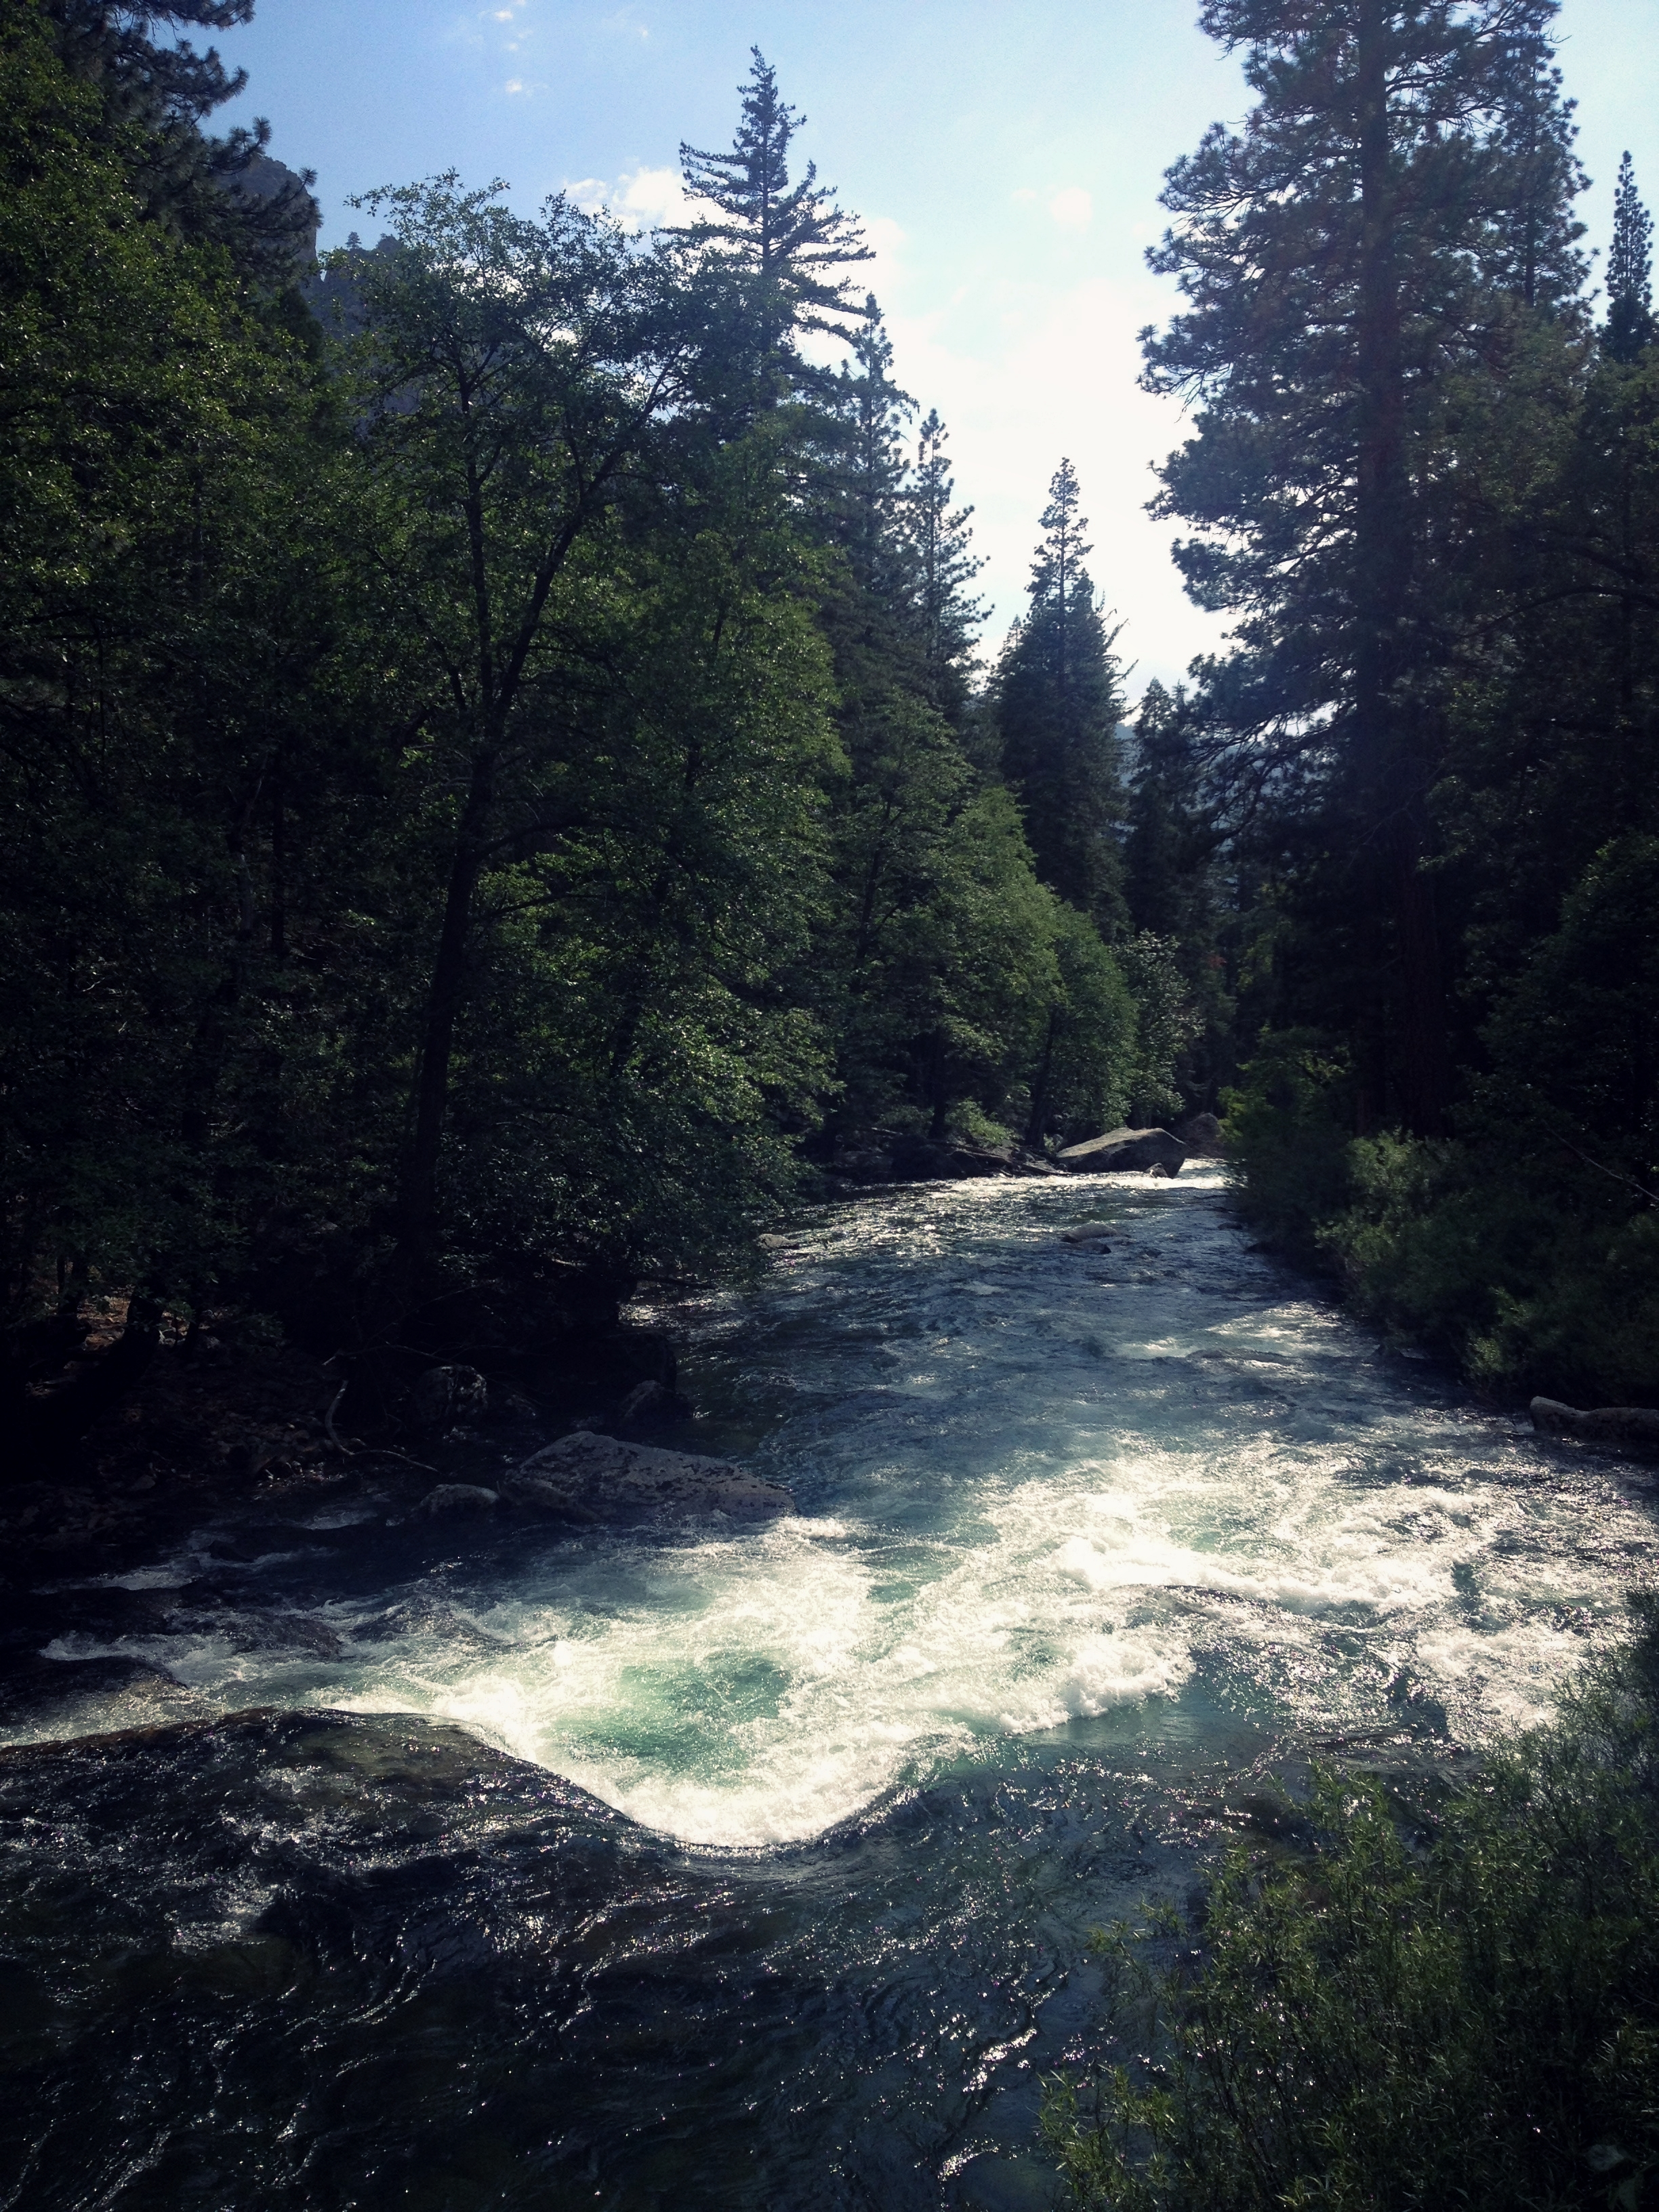 Mountain River in Kings Canyon California